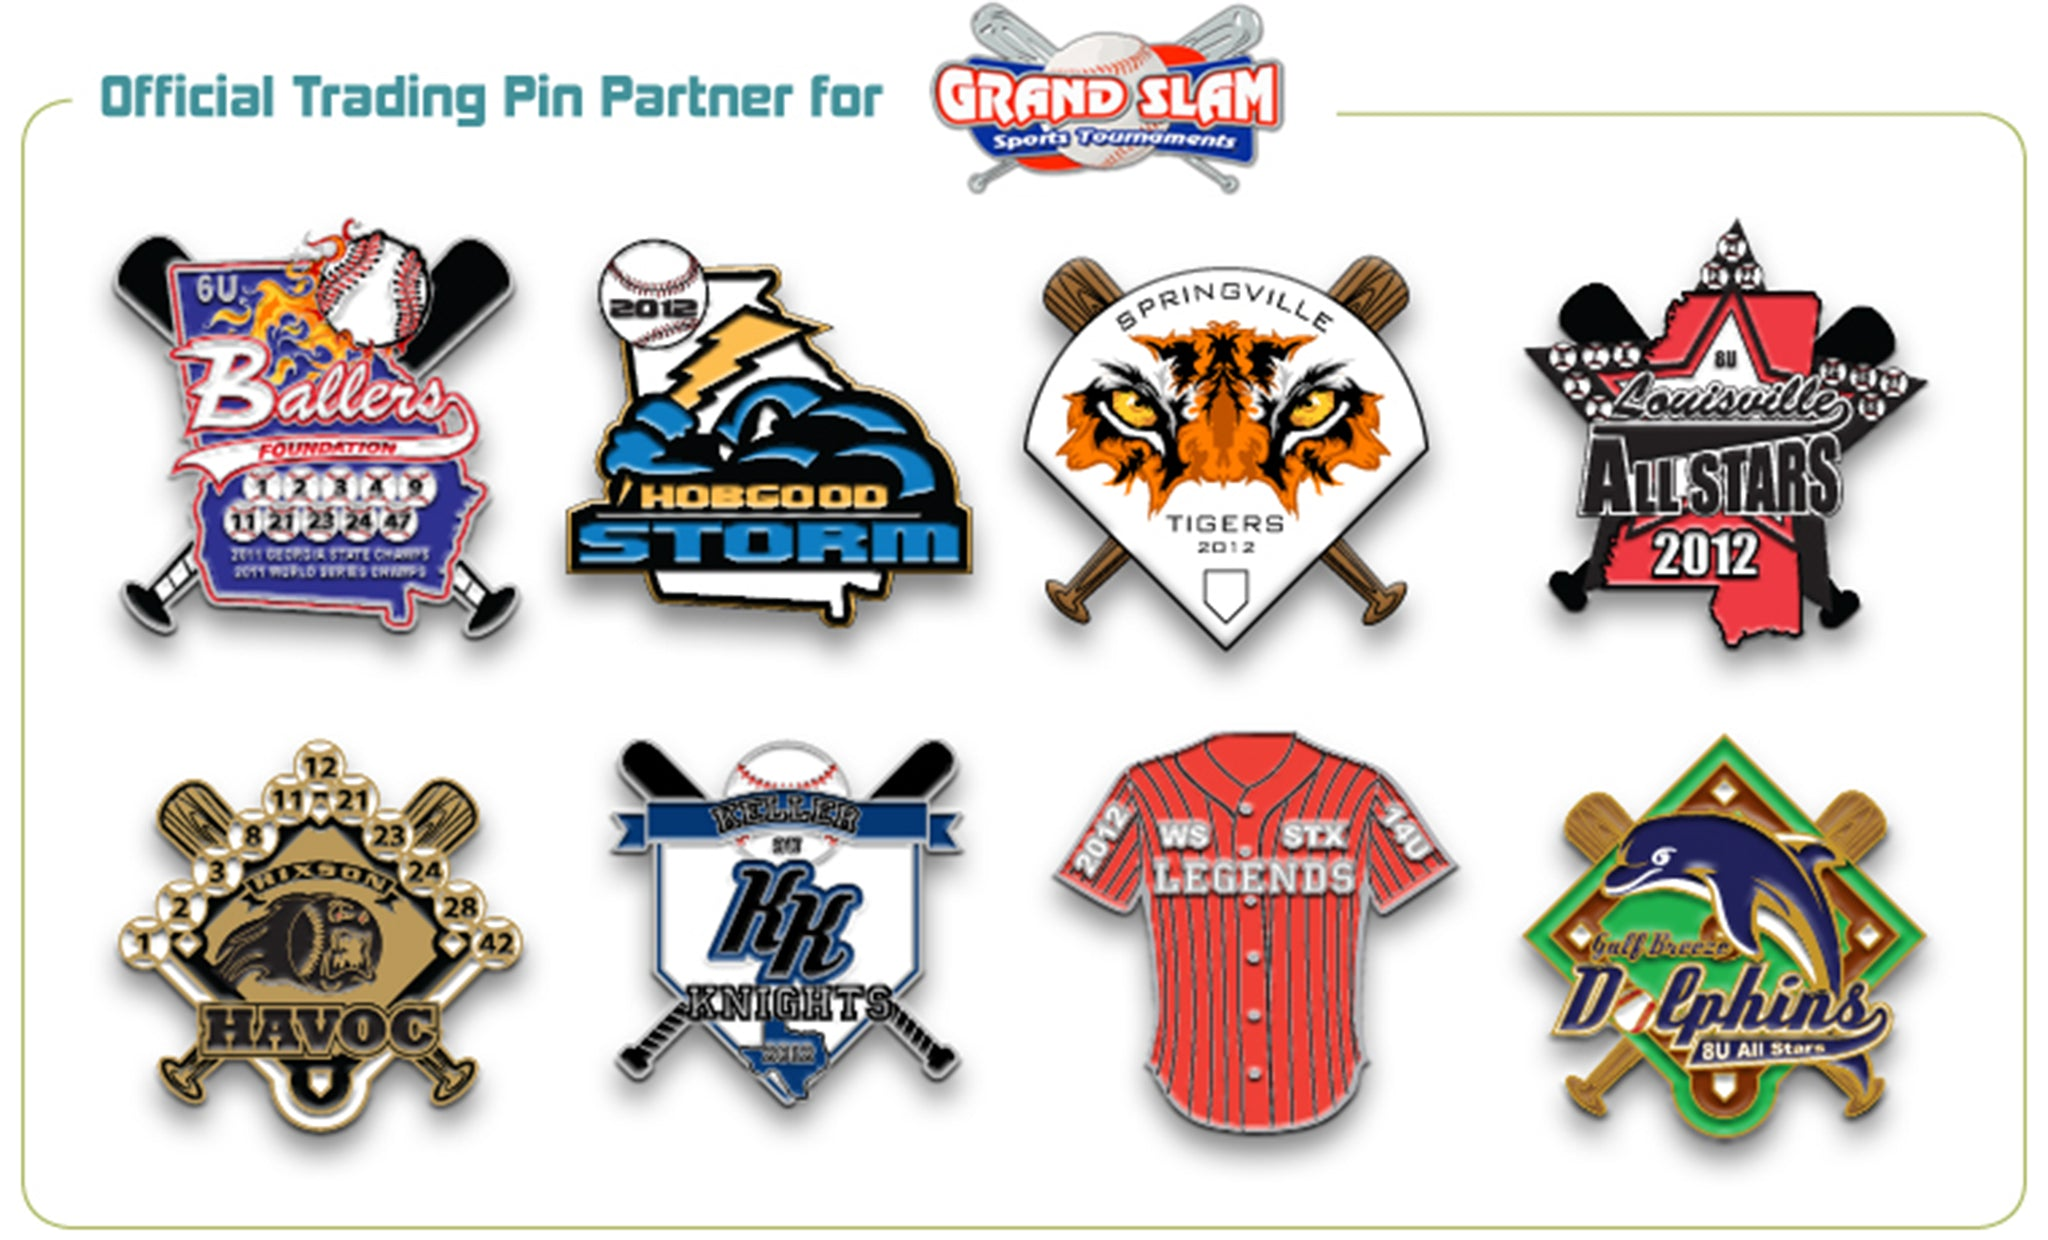 Grand Slam Trading Pins - SteelBerry Pins